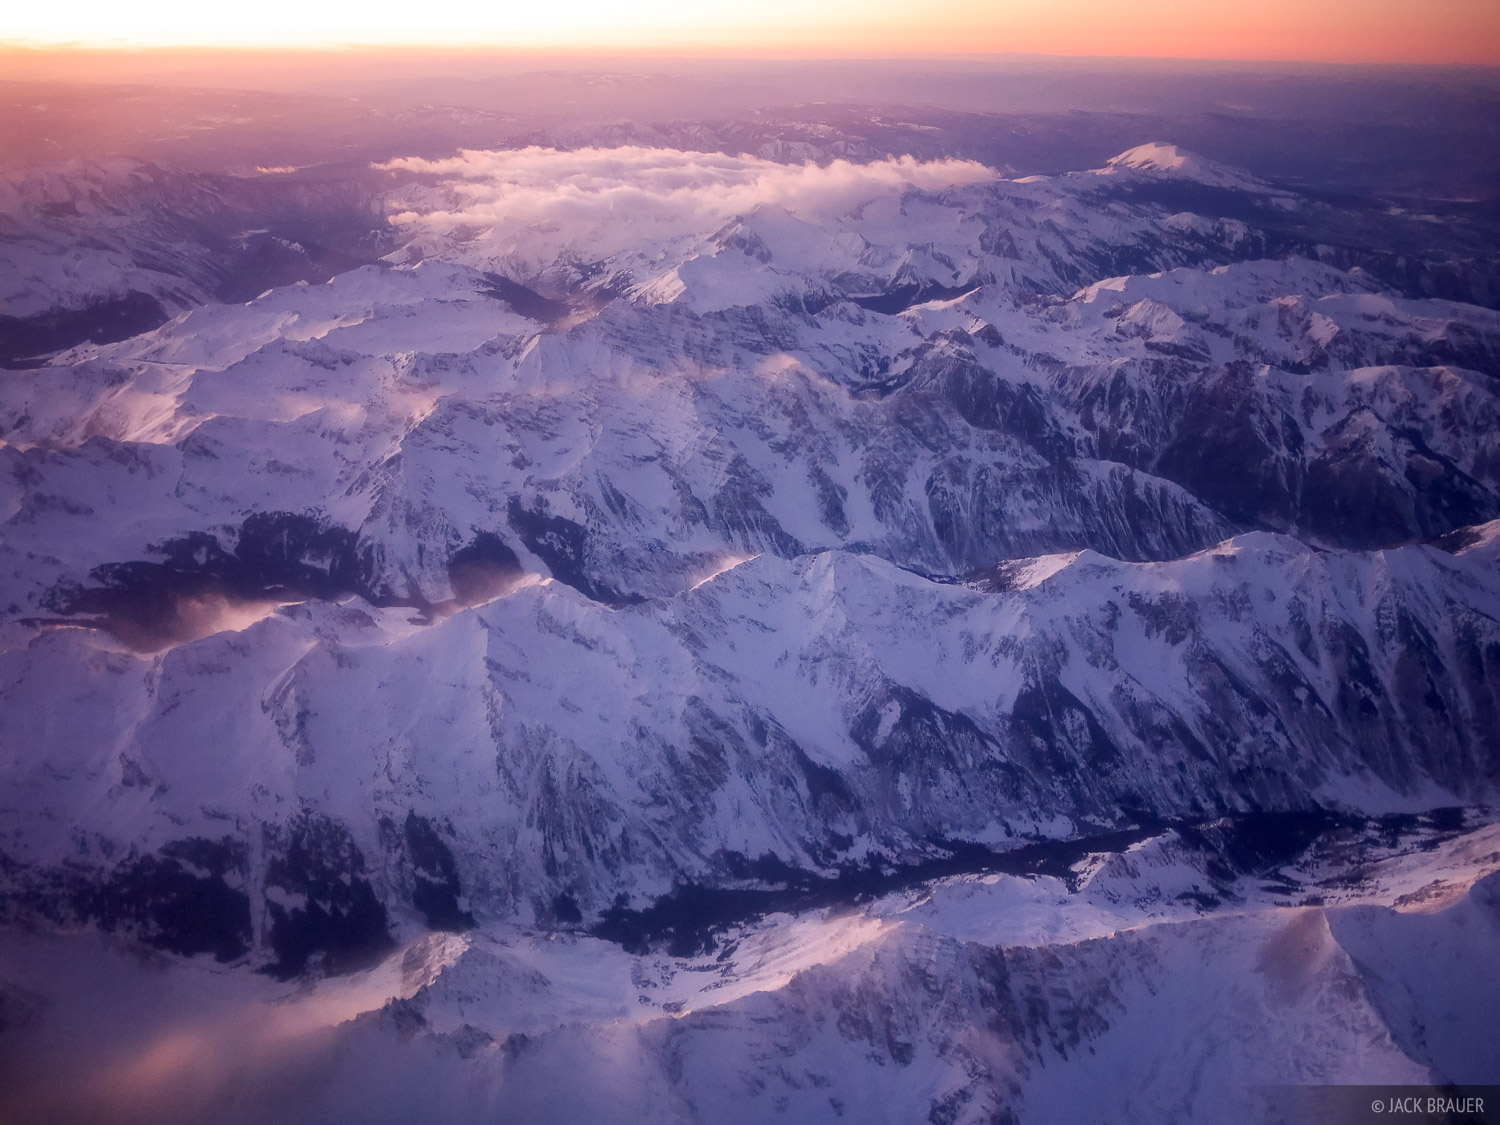 Elk Mountains, Aerial, sunset, Colorado, January, winter, Maroon Bells-Snowmass Wilderness, photo